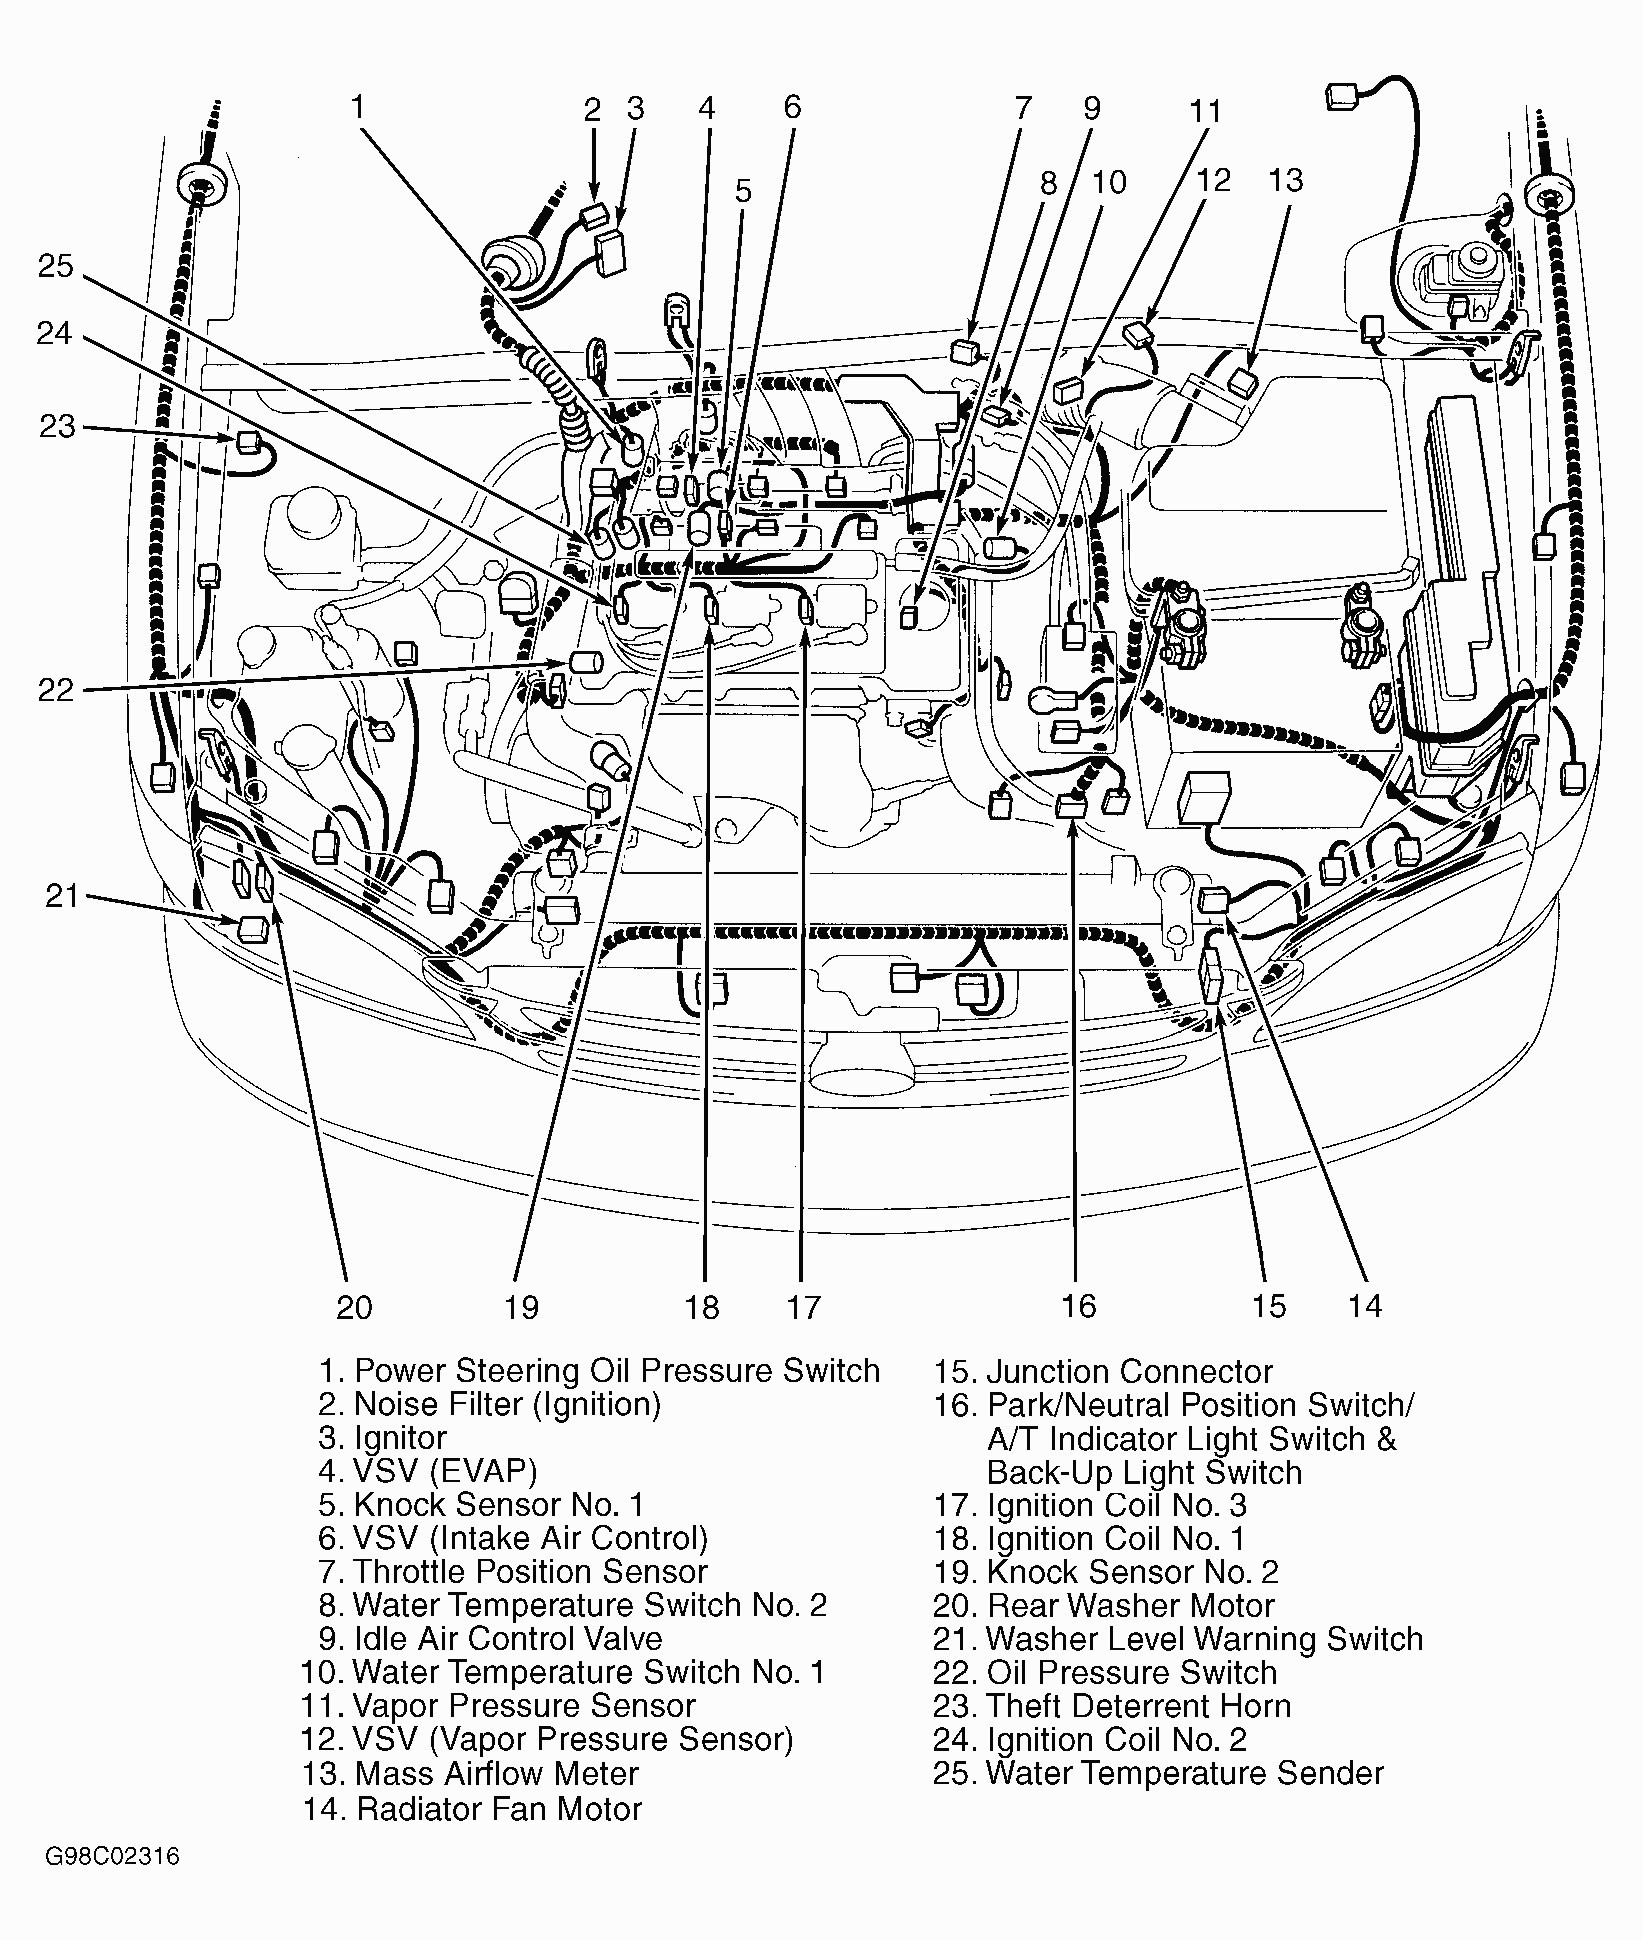 Toyota Matrix 2004 Fuse Box Diagram Wiring Library 2002 Tacoma Engine 98 Ta A Diagrams Instructions Of